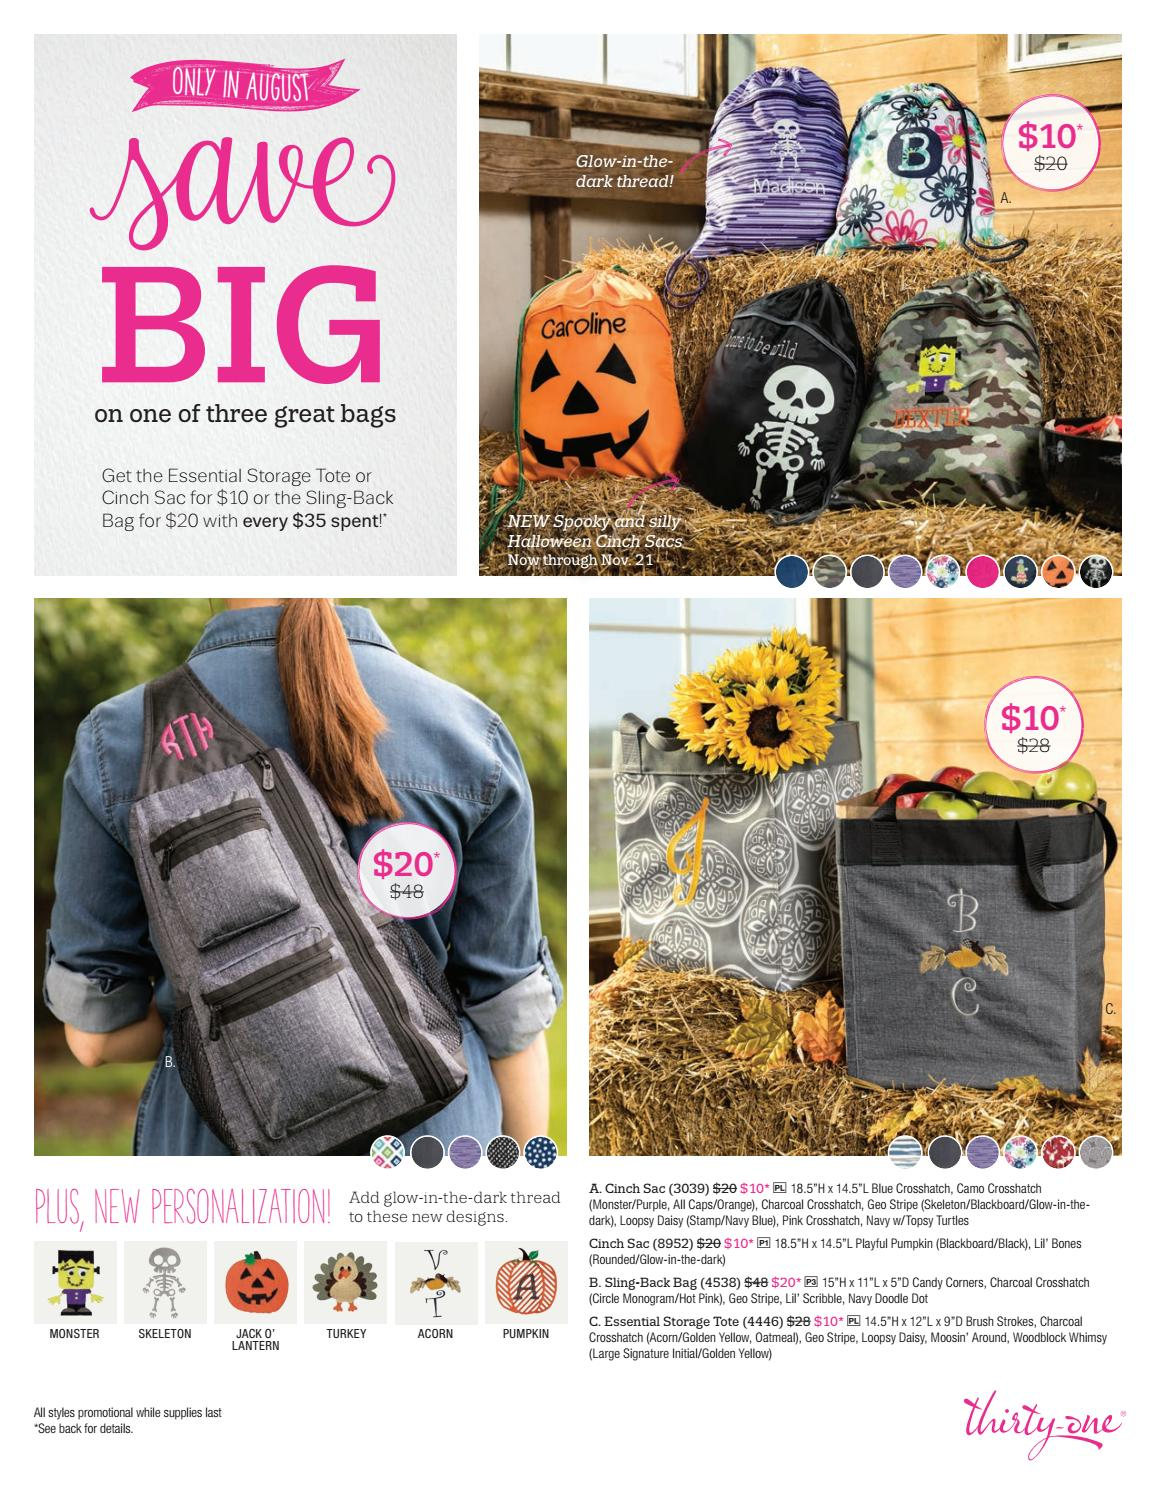 Thirty one november customer special 2014 - Thirty One Gifts August 2017 Customer Hostess Specials